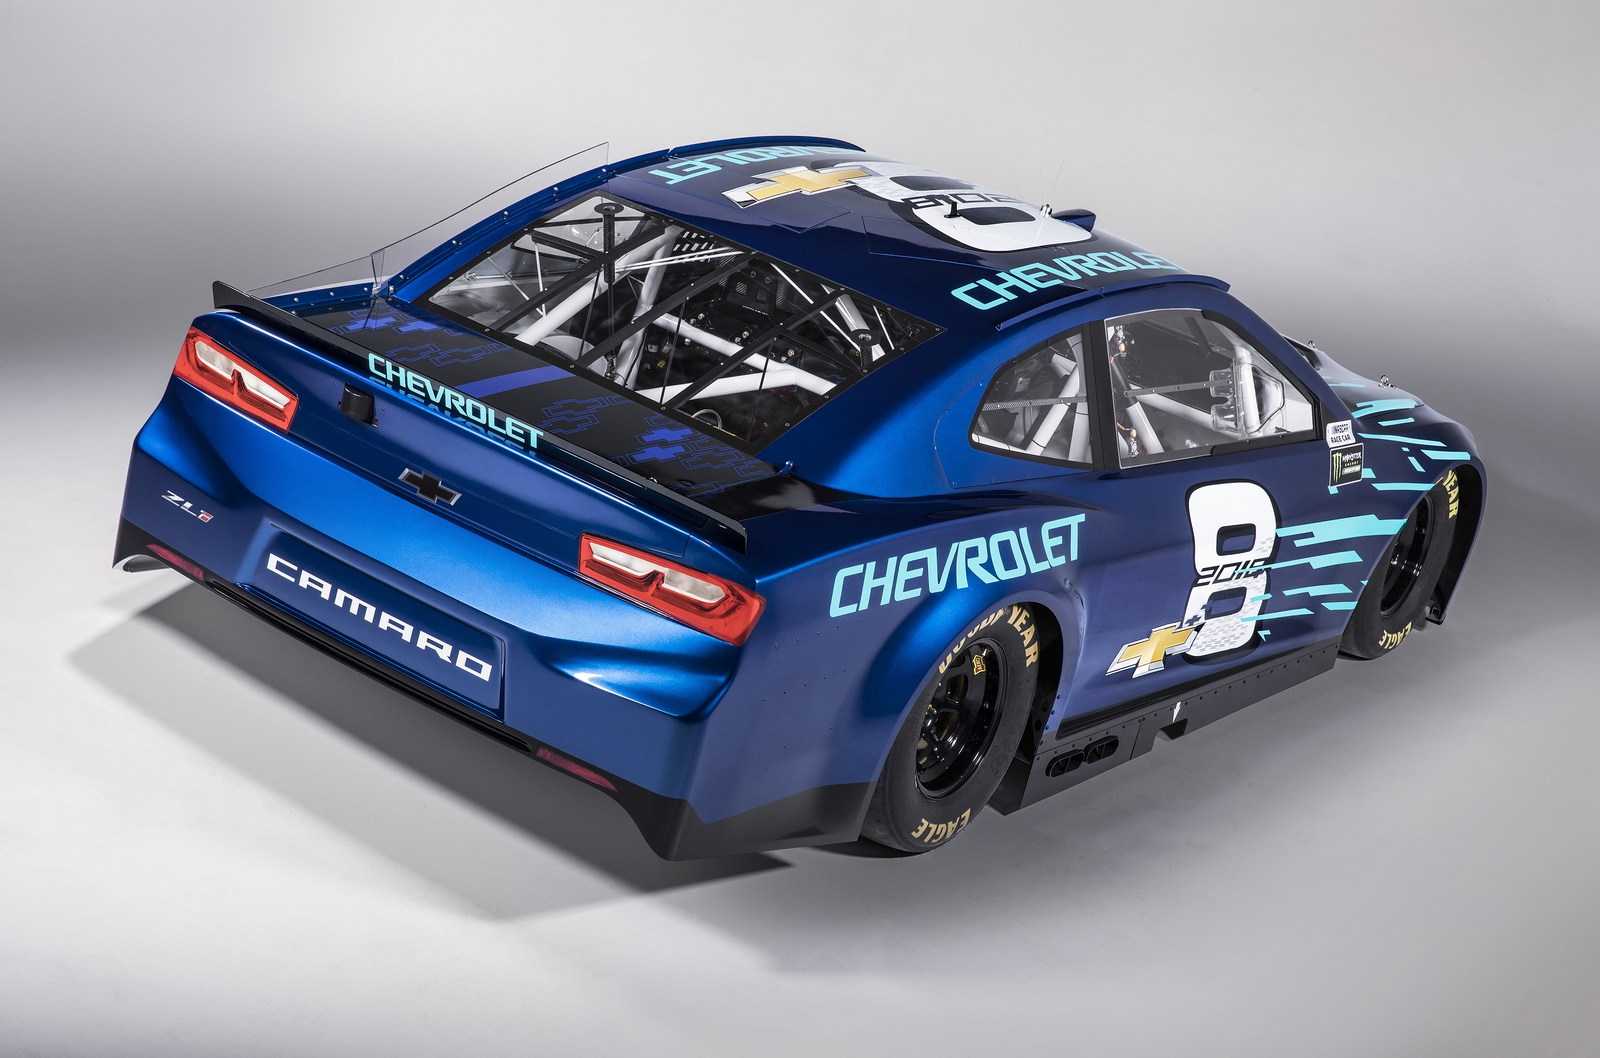 2018 Chevrolet Camaro ZL1 Race Car Unveiled For the ...